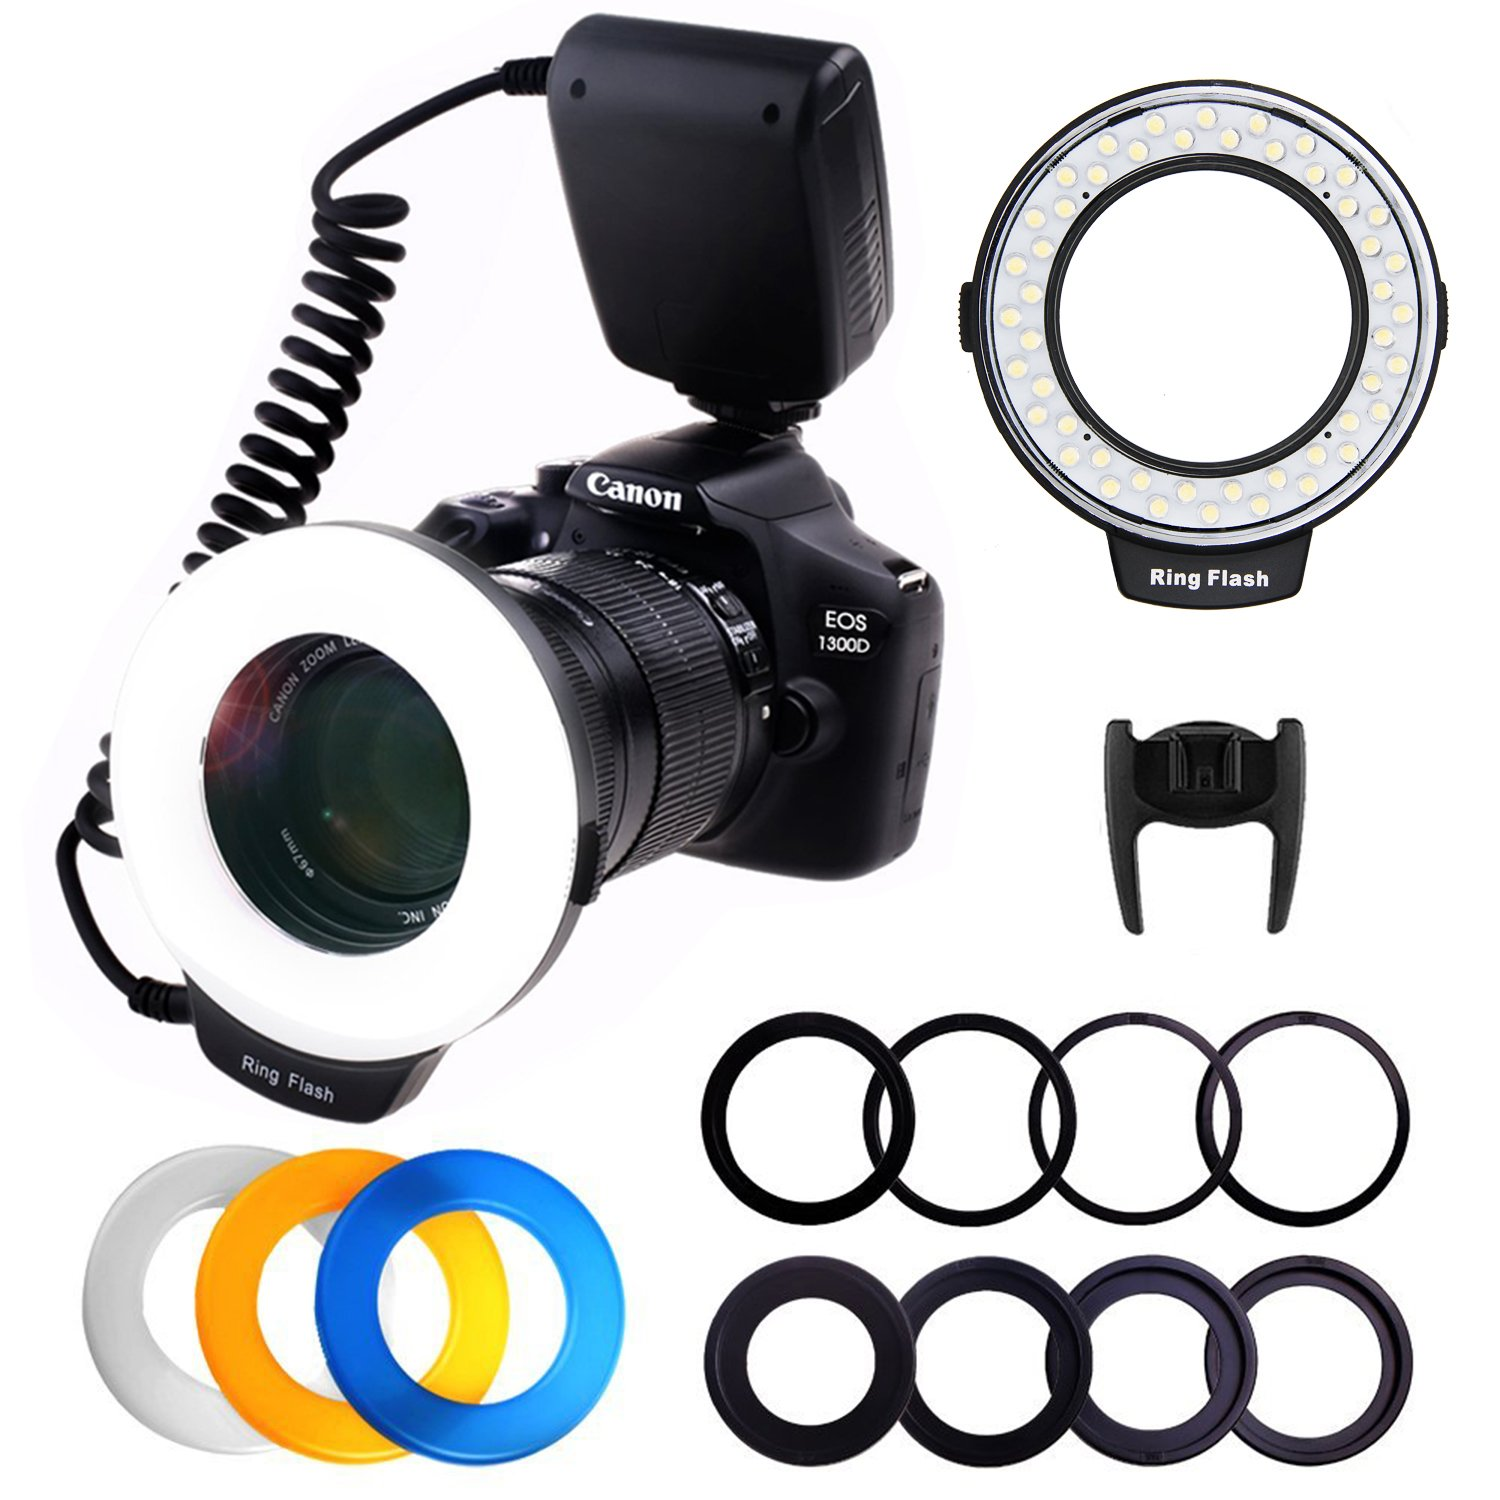 RPLOTURE 48 Ring Flash Light with LCD Display Adapter Rings and Flash Diffusers for Canon Nikon and Other DSLR Cameras, Fit 49, 52, 55, 58, 62, 67, 72, 77mm Camera Lenses by PLOTURE